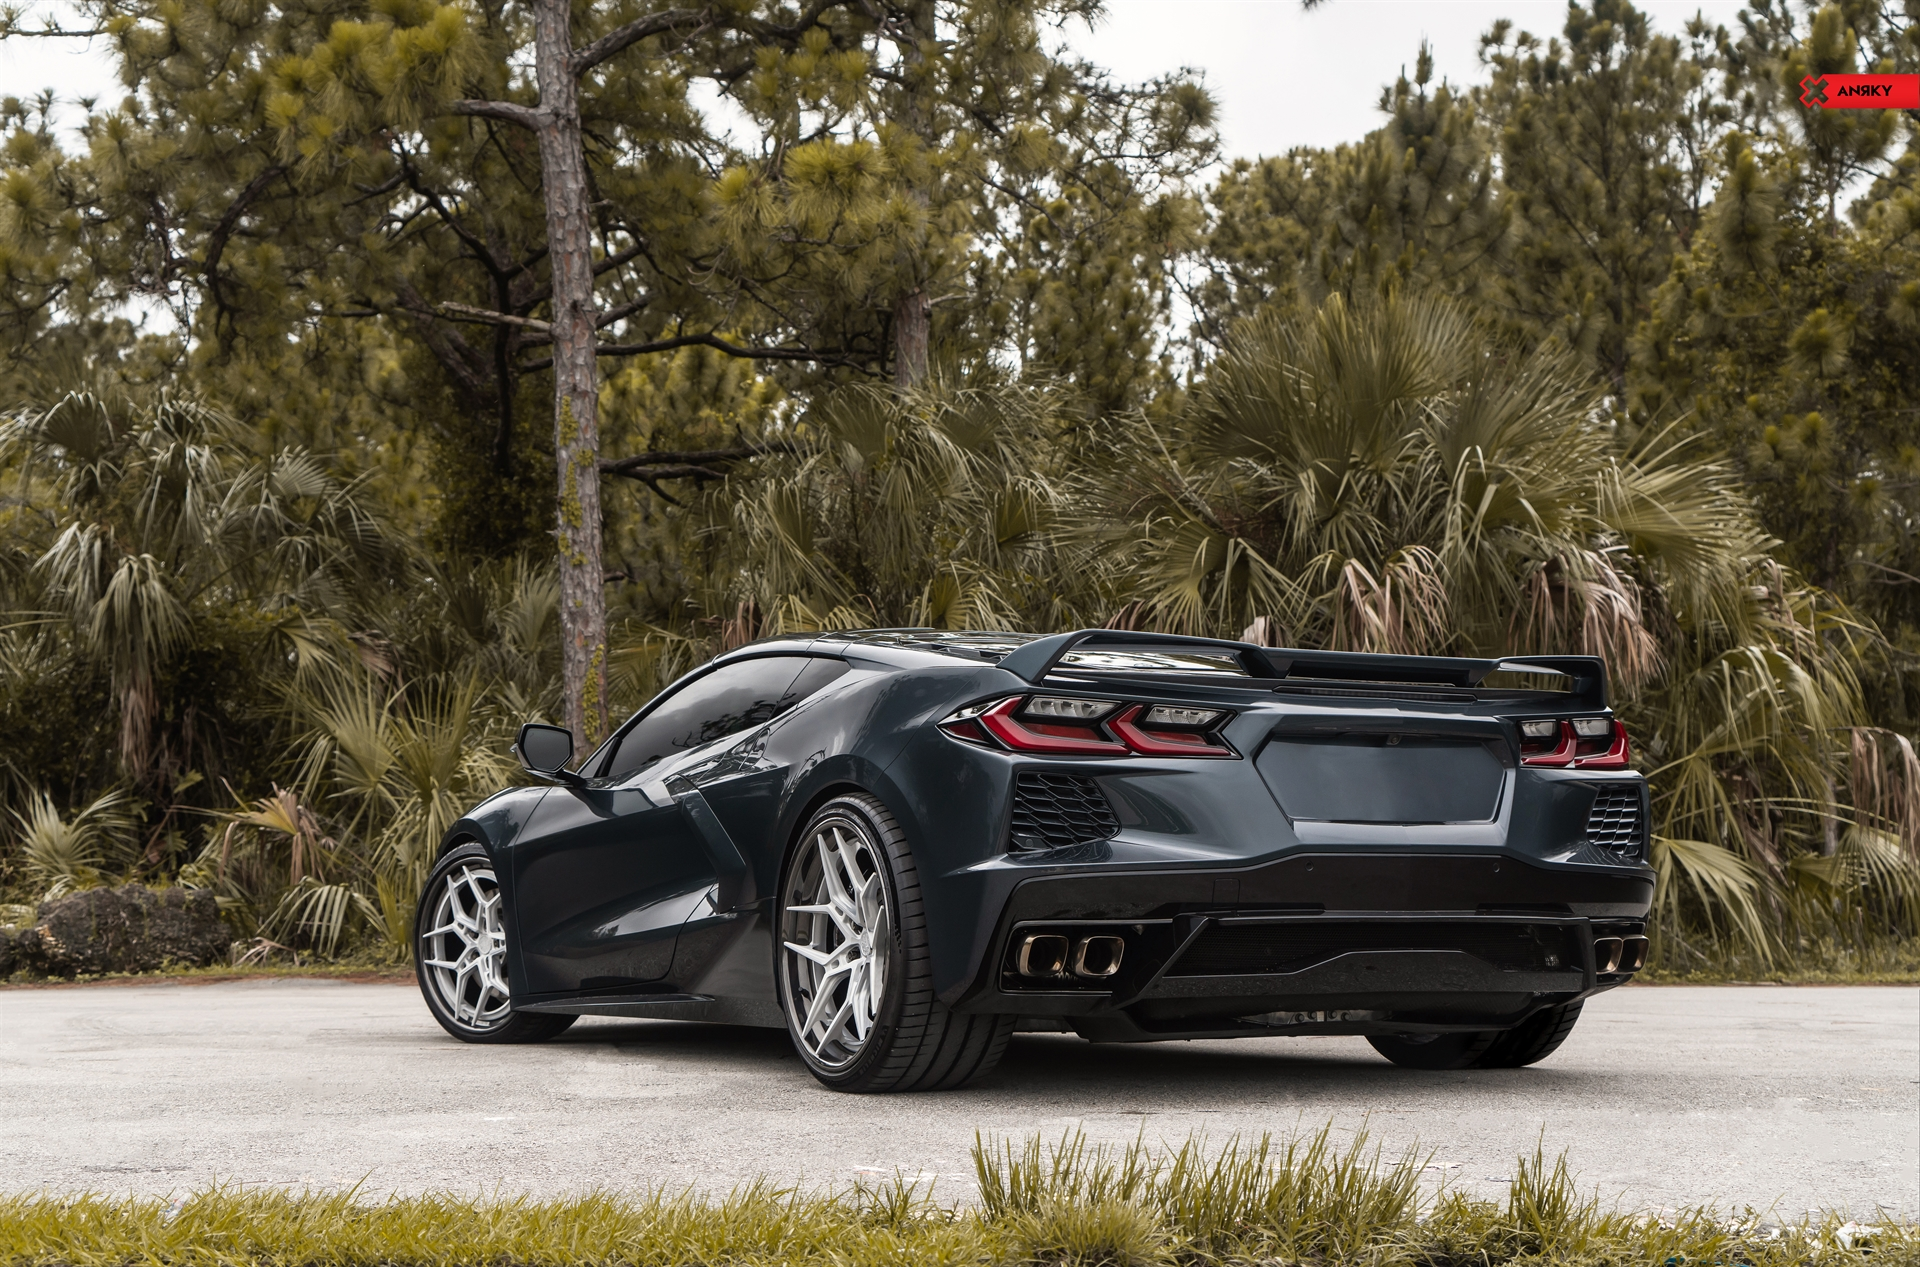 Chevrolet C8 Corvette – X|Series S3-X4